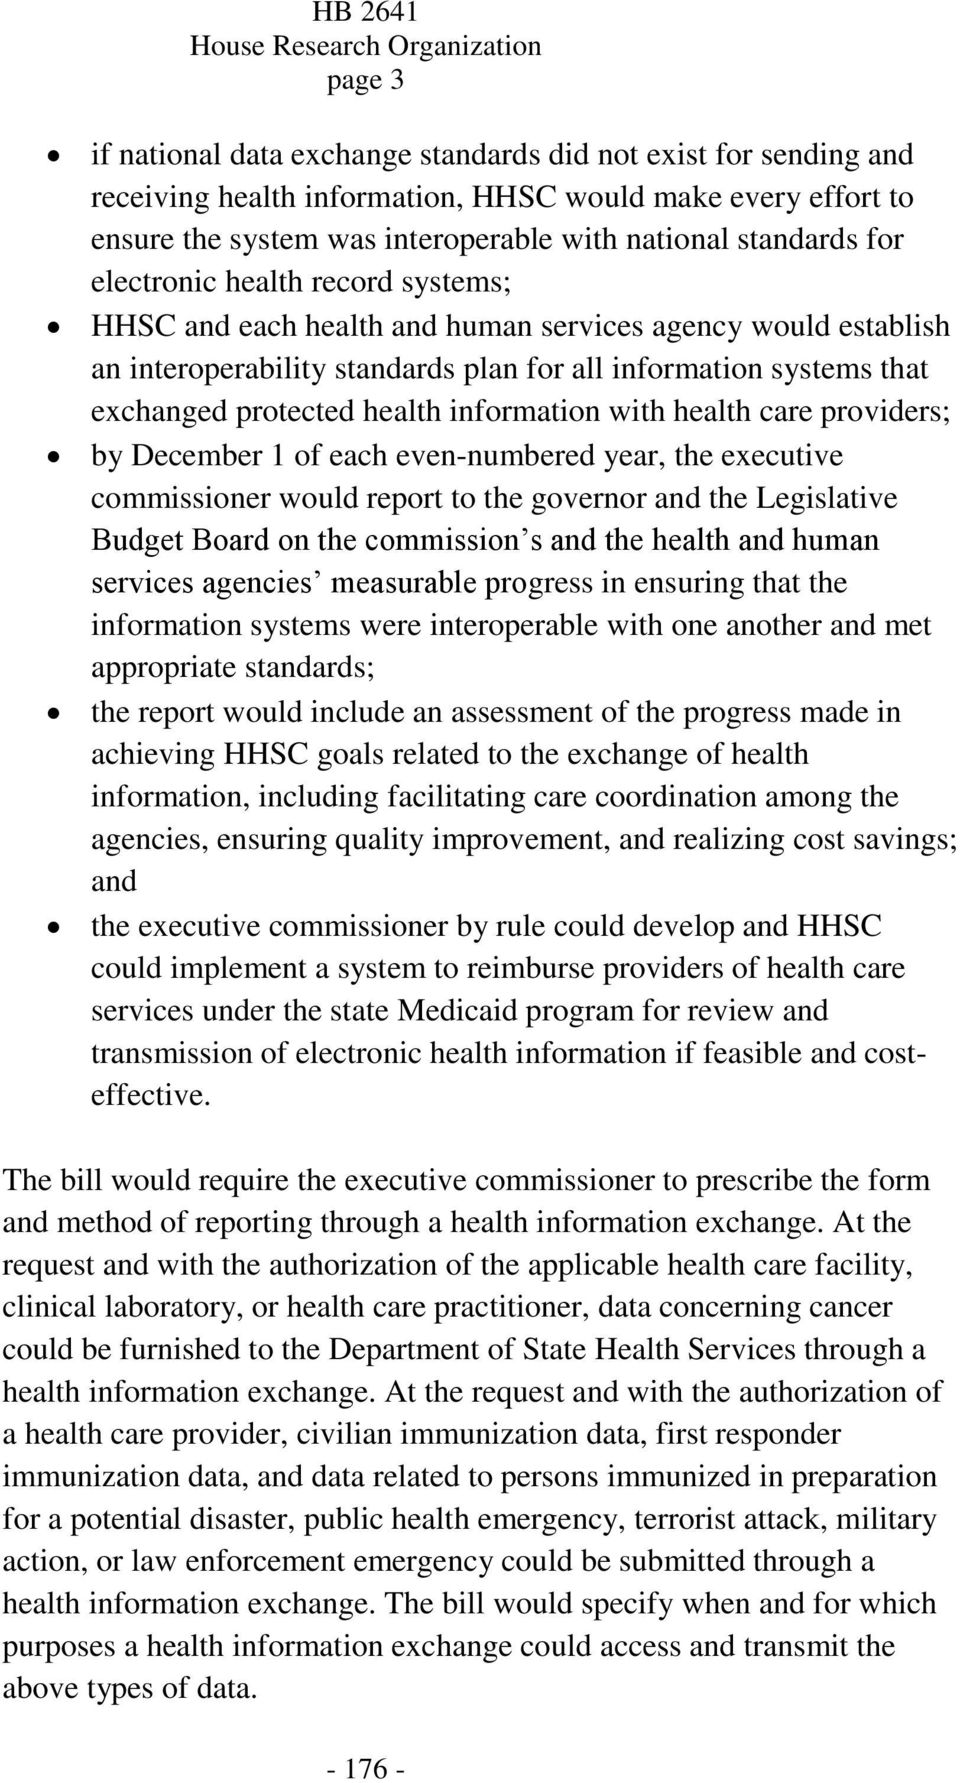 health information with health care providers; by December 1 of each even-numbered year, the executive commissioner would report to the governor and the Legislative Budget Board on the commission s